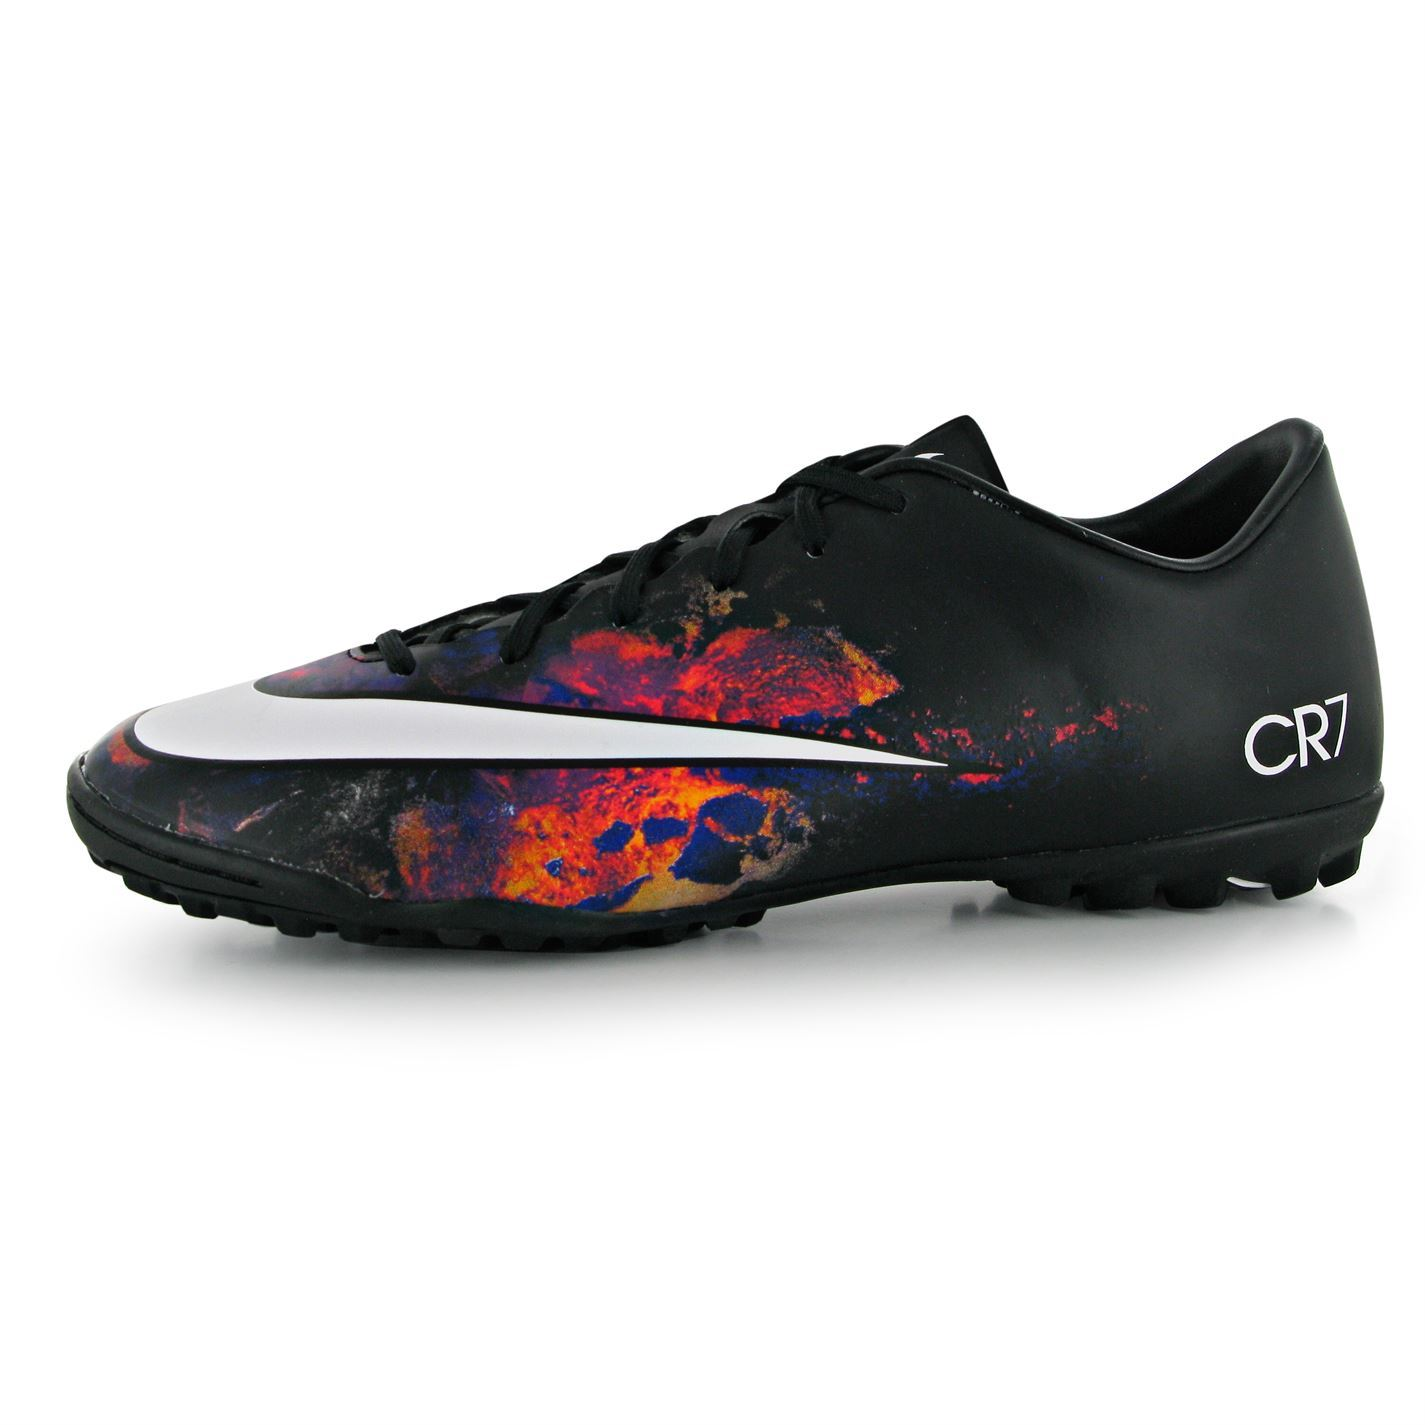 nike mercurial victory cr7 astro turf football trainers. Black Bedroom Furniture Sets. Home Design Ideas